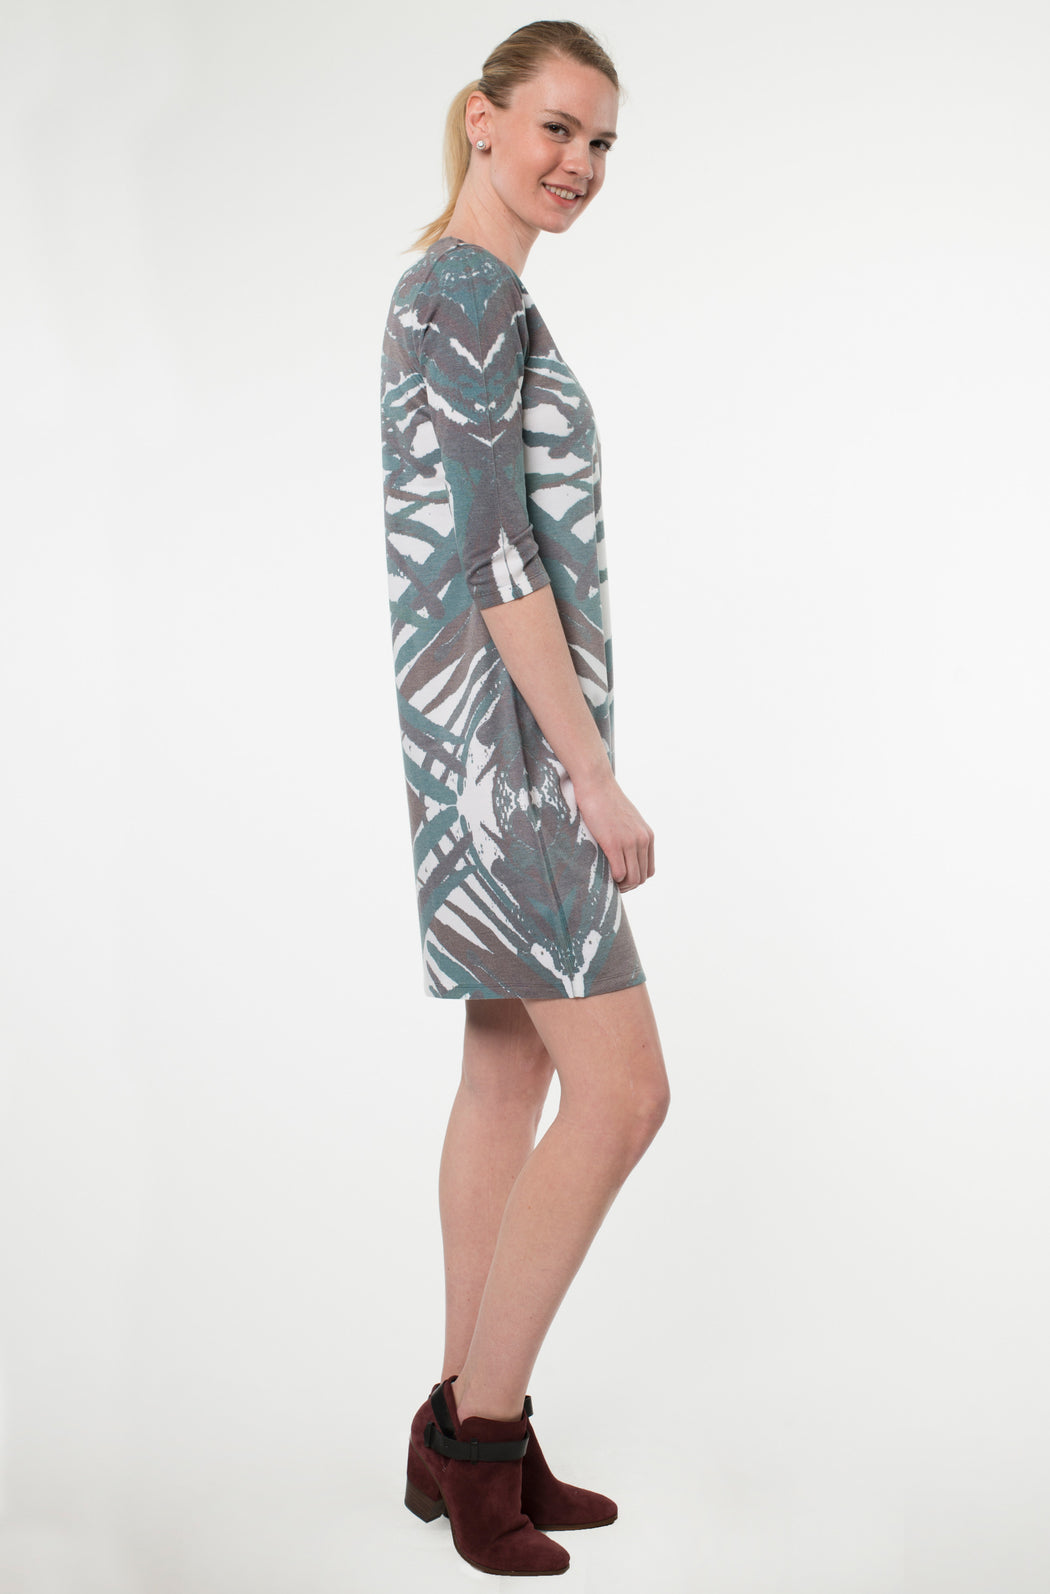 Hawaiian Notch Neck Dress in Unir Print - Atelier5